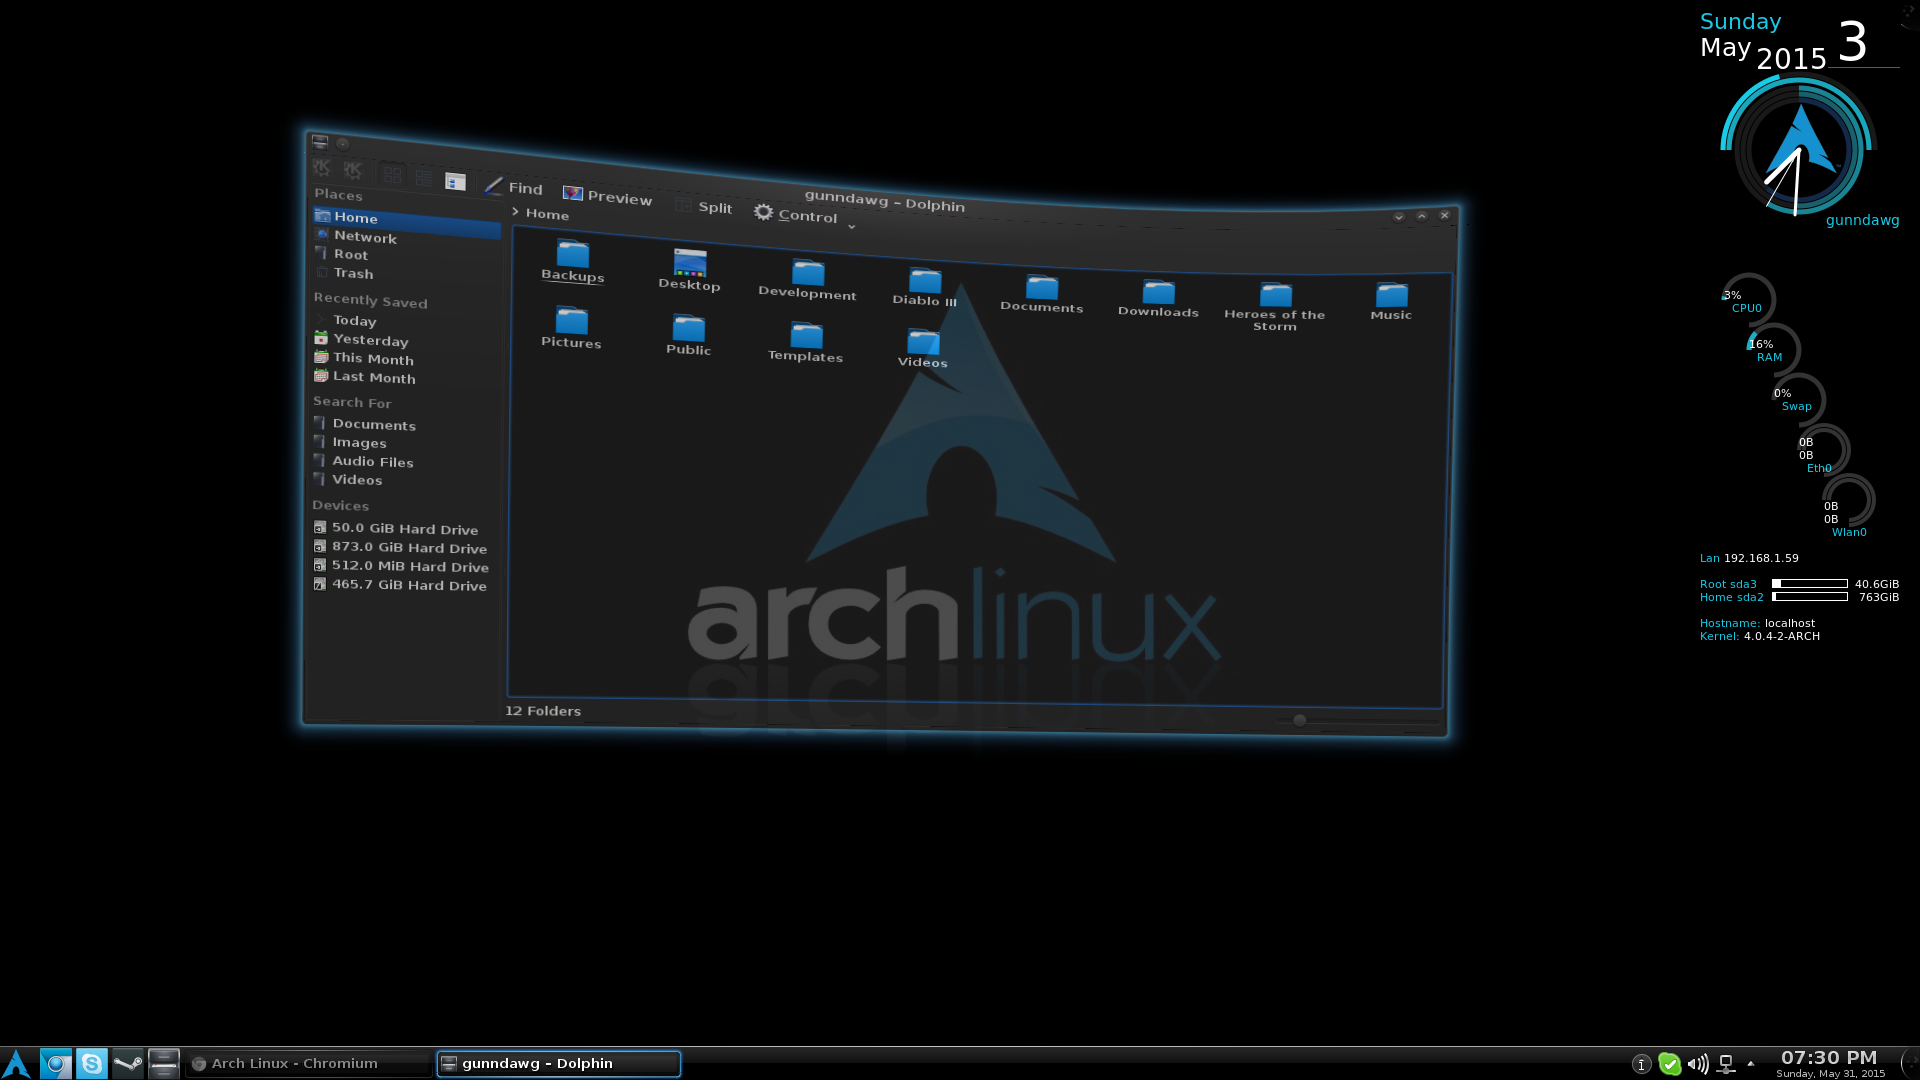 How To Clean And Speed Up Arch Linux | Linux | Linux, Arch, Cleaning